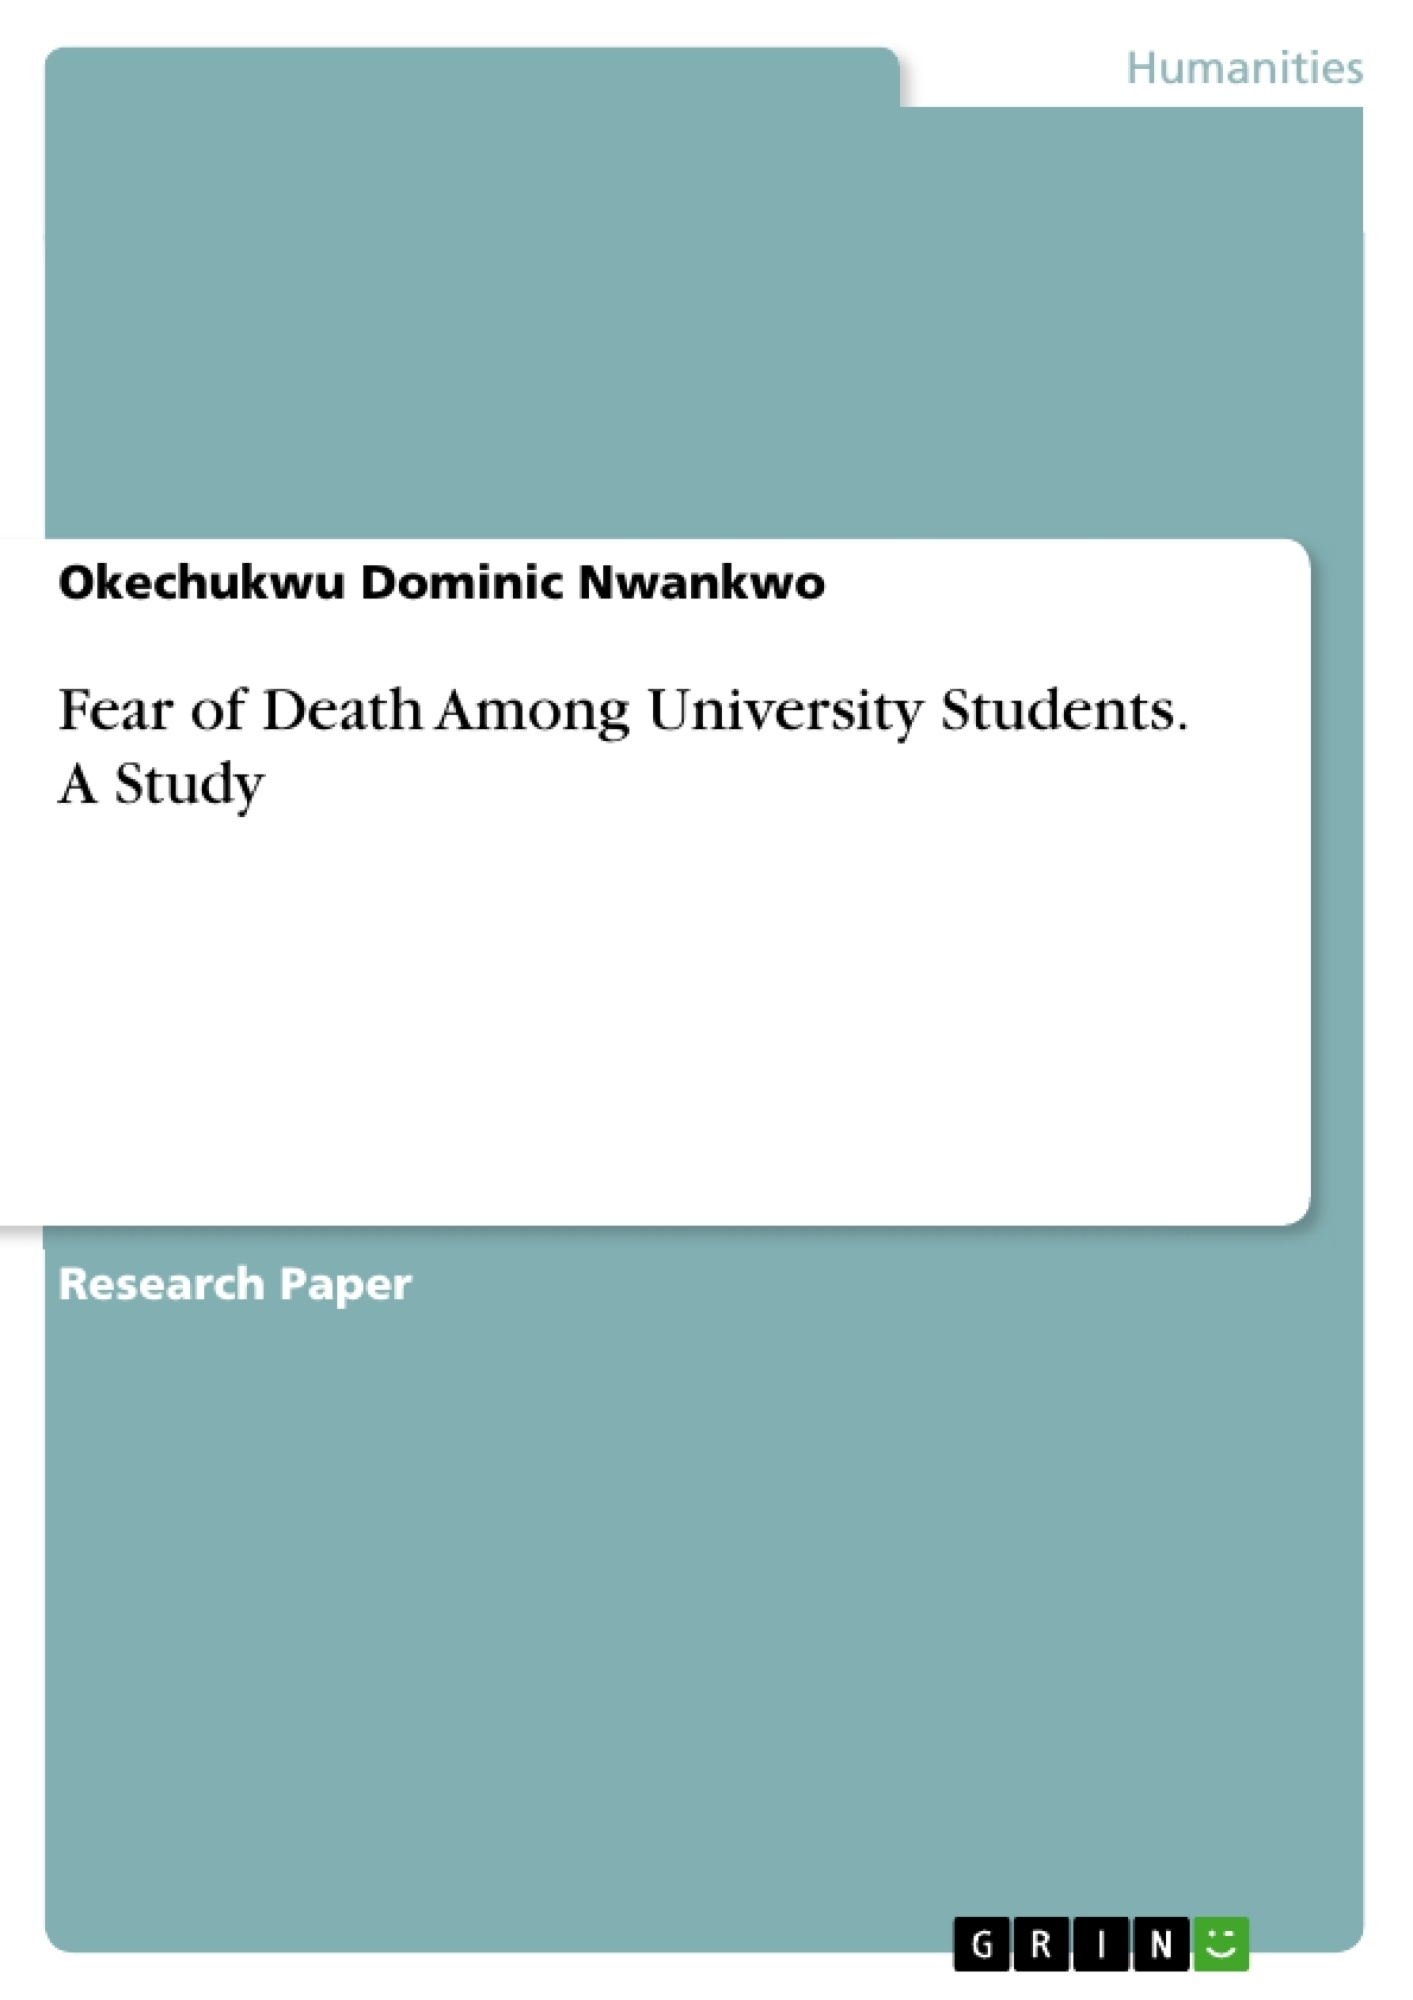 Title: Fear of Death Among University Students. A Study